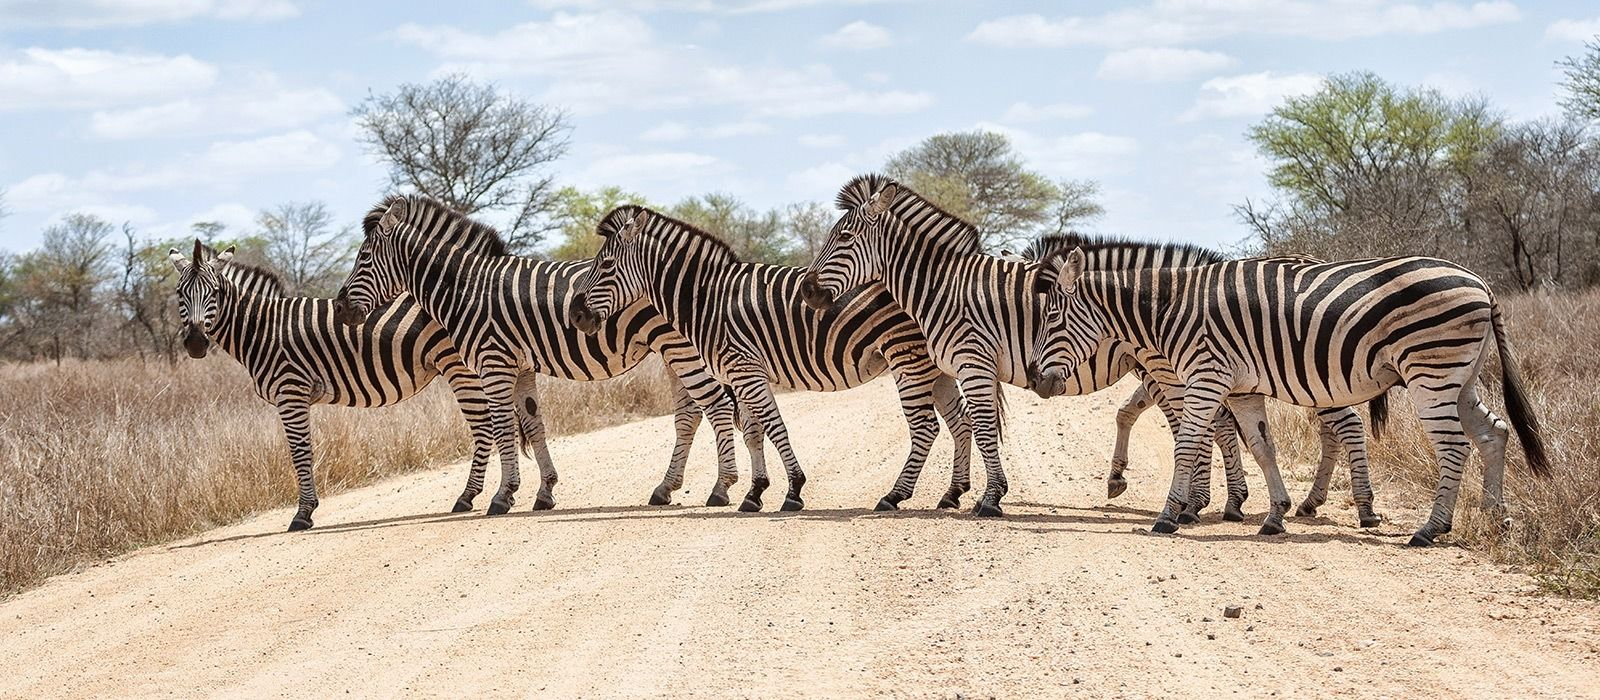 South Africa & Zambia:  Panoramaroute, Kruger & Victoria Falls Tour Trip 2